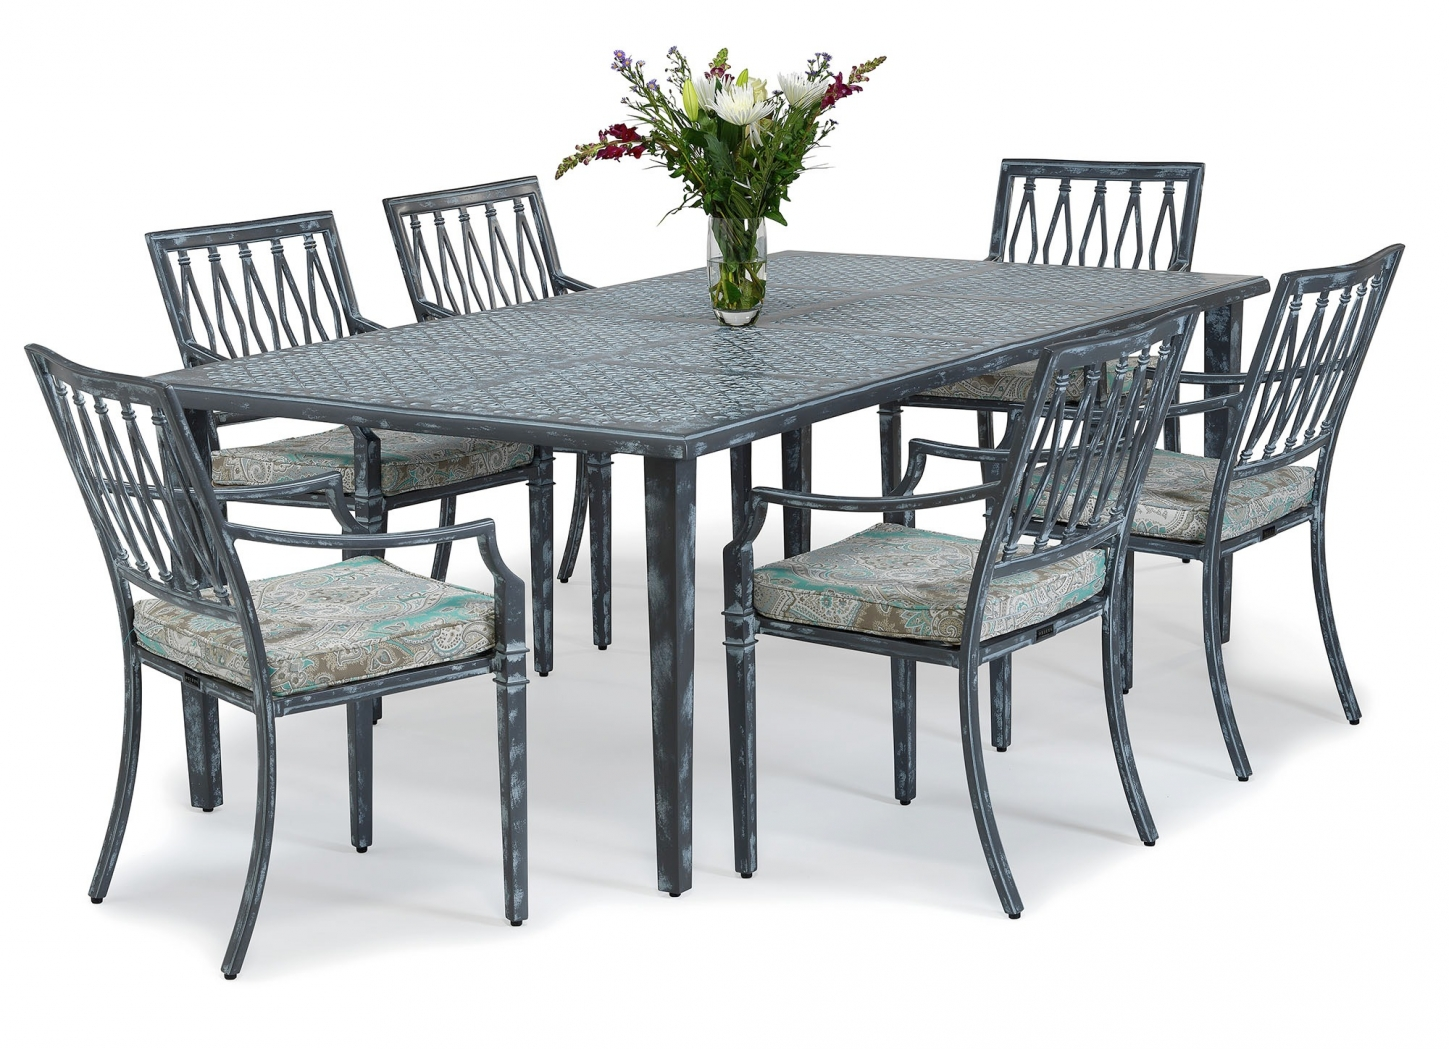 Sienna metal outdoor dining table